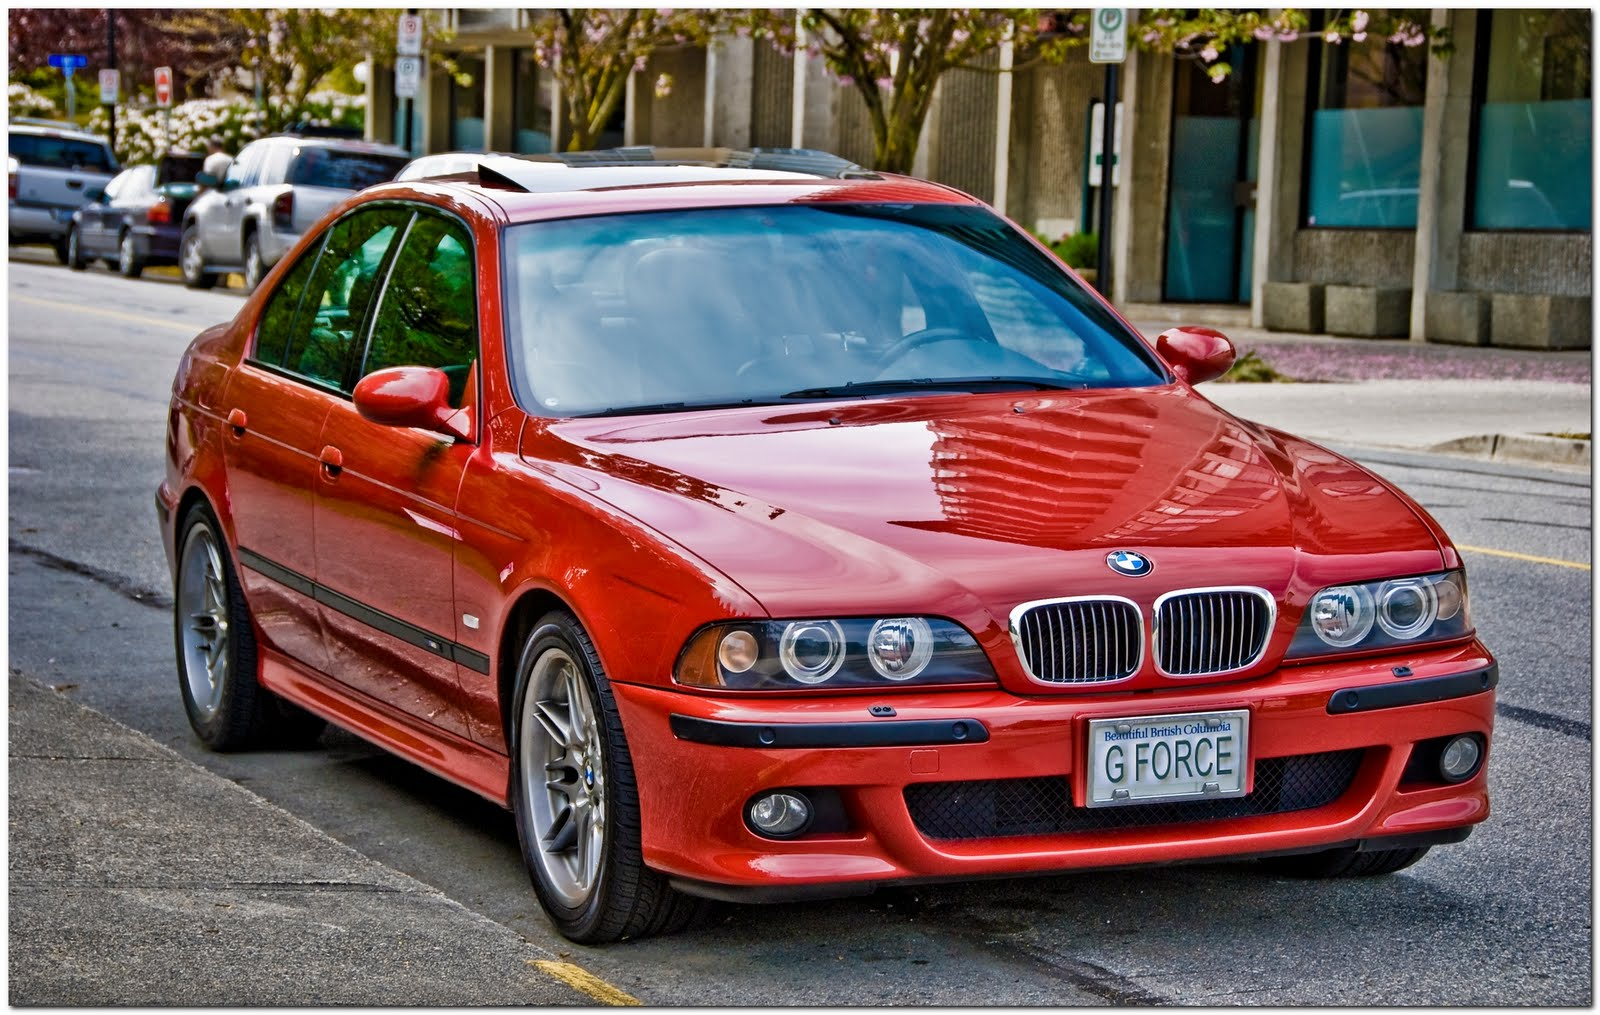 Fast And Furious Iphone 5 Wallpaper Bmw E39 M5 Auto Car